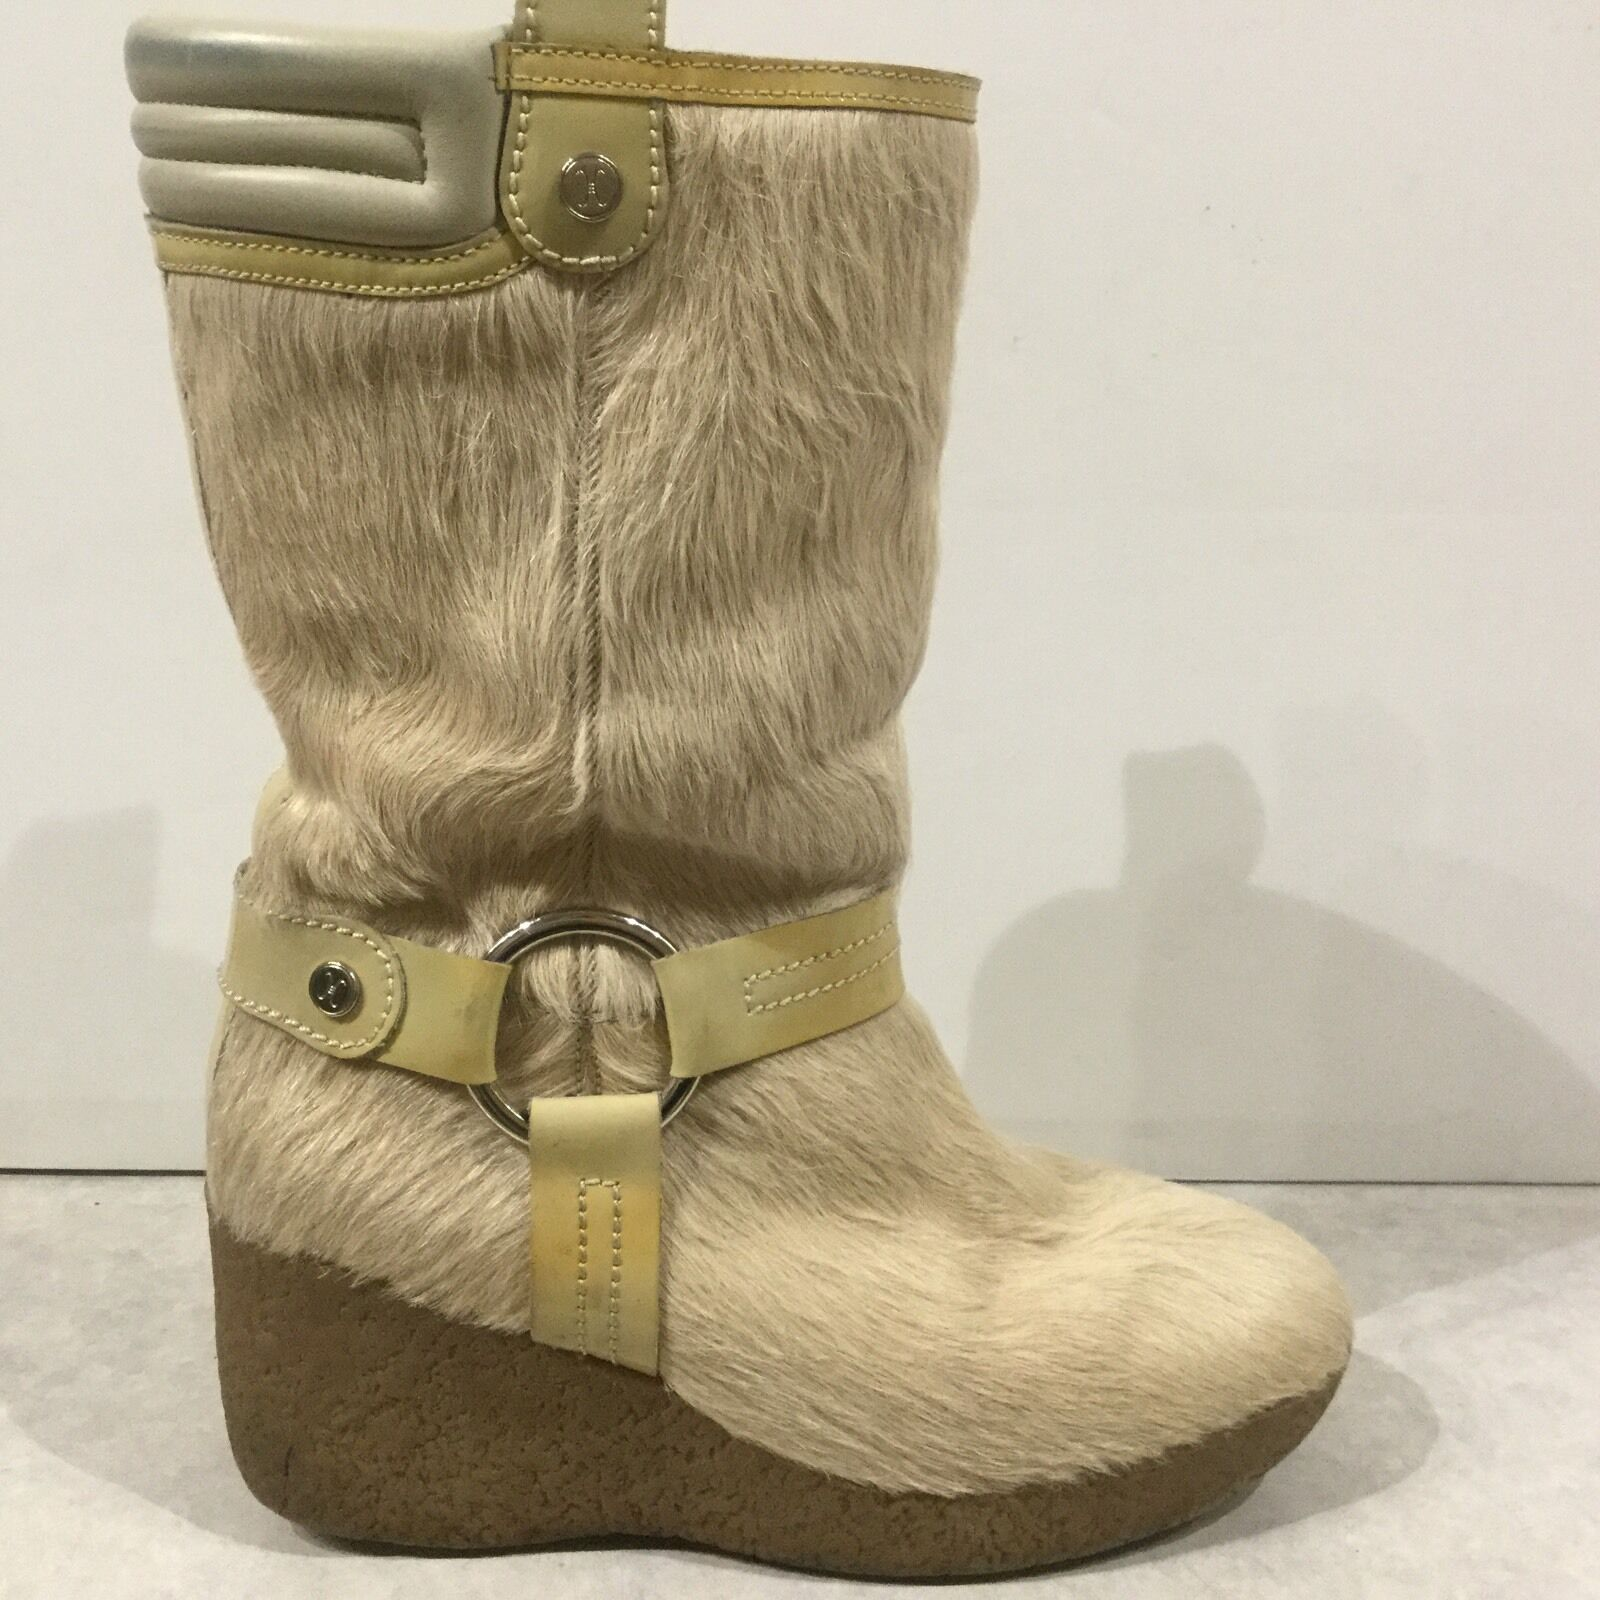 Cole Haan Womens Pony Hair Sheepskin Lined Wedge Snow Boots Sz 7 M